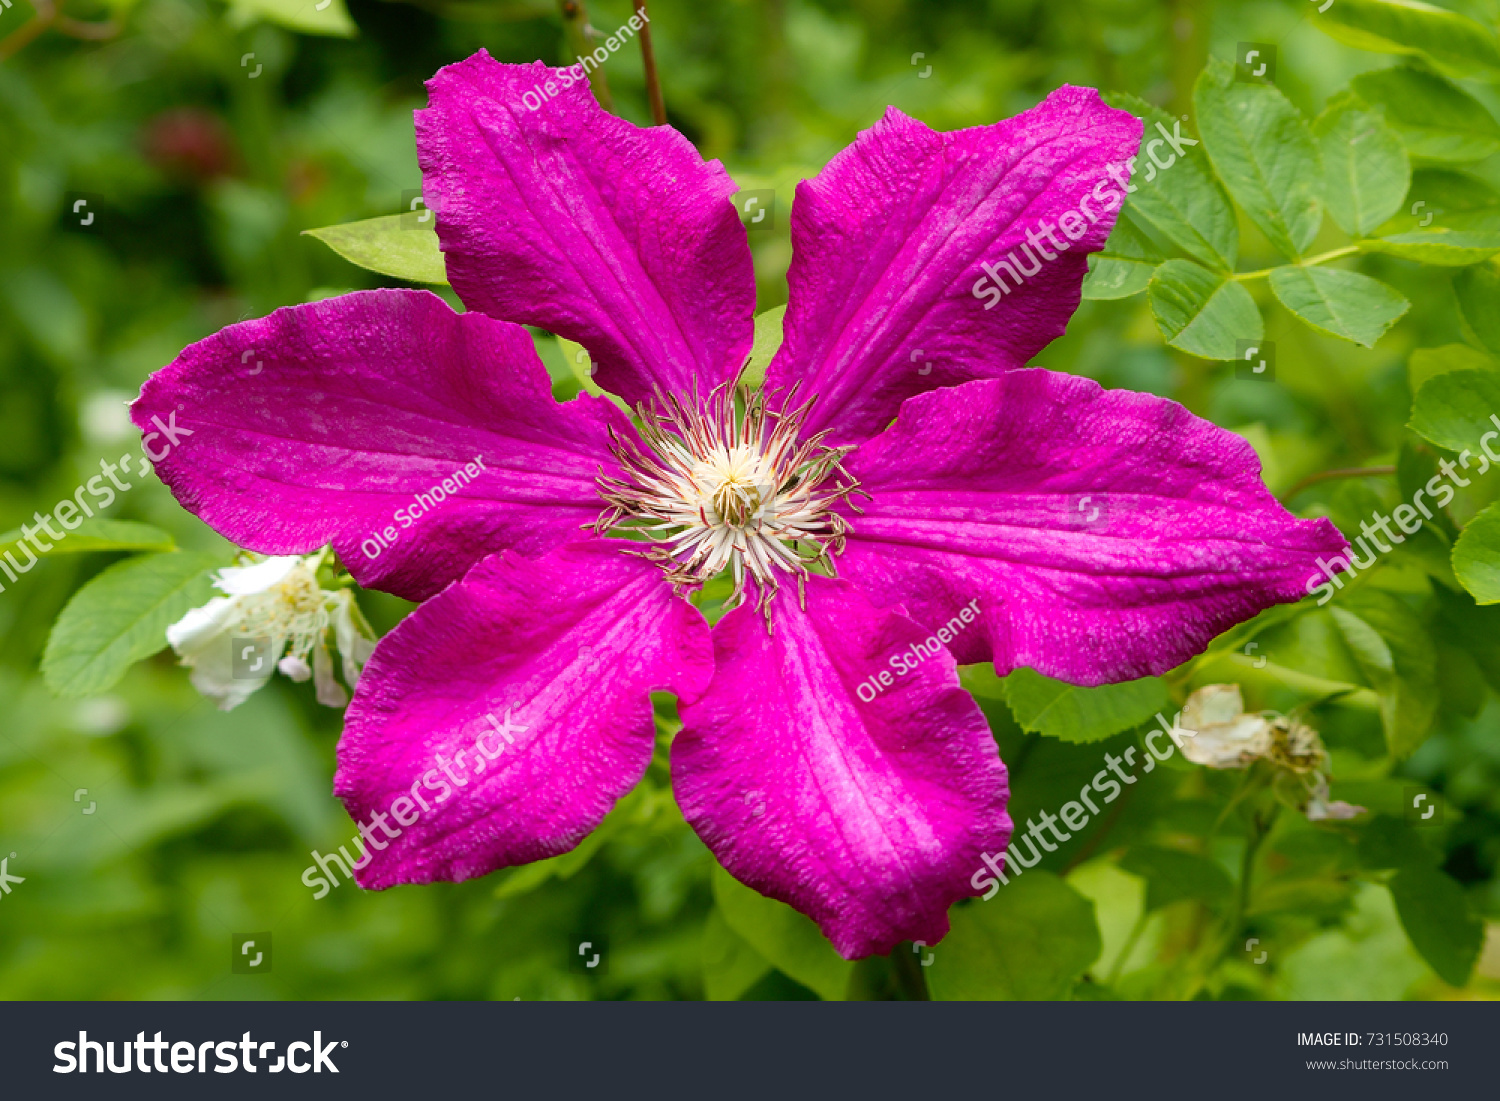 Huge pink pink clematis flower stock photo 731508340 shutterstock huge pink pink clematis flower mightylinksfo